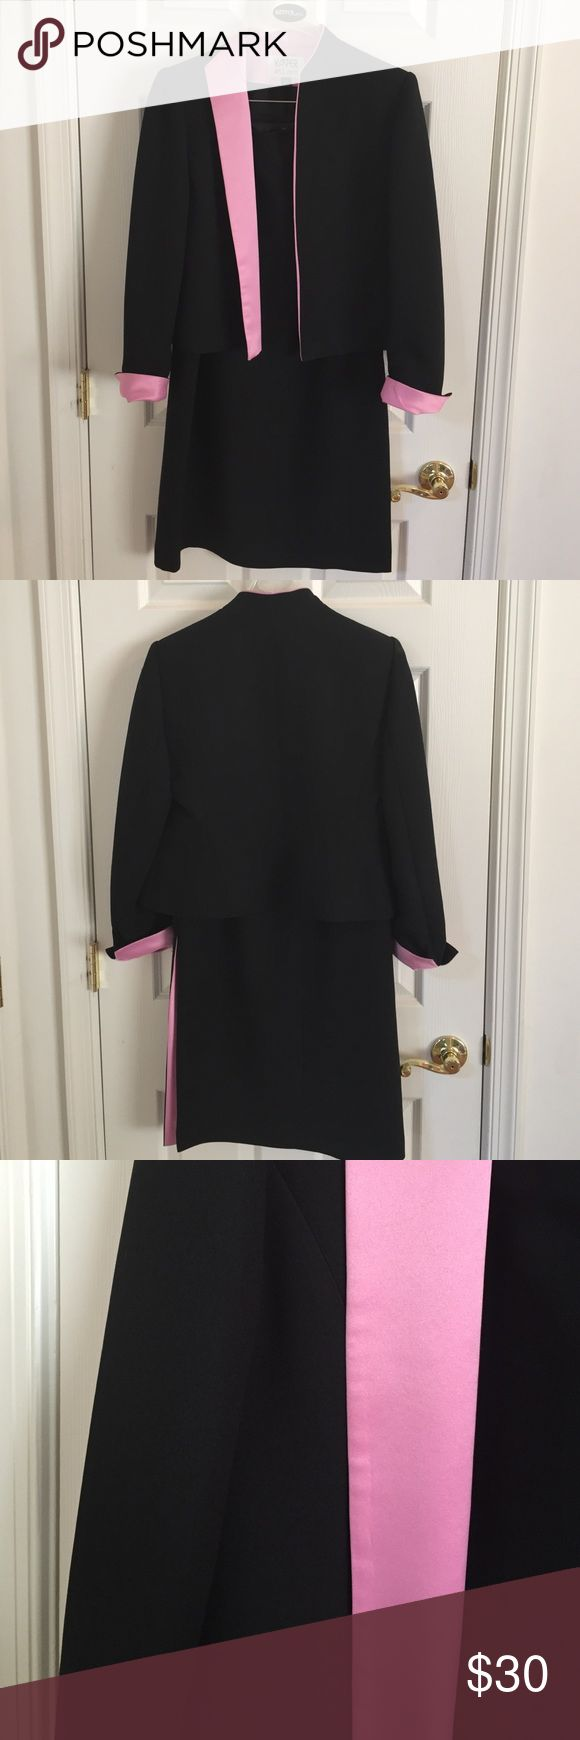 Timeless Kasper short suit jacket and long skirt Beautiful and simply timeless hot pink and black suit jacket and long skirt with matching pink lined side slit..eye catching accents silky soft..optional folding cuffs Kasper Other